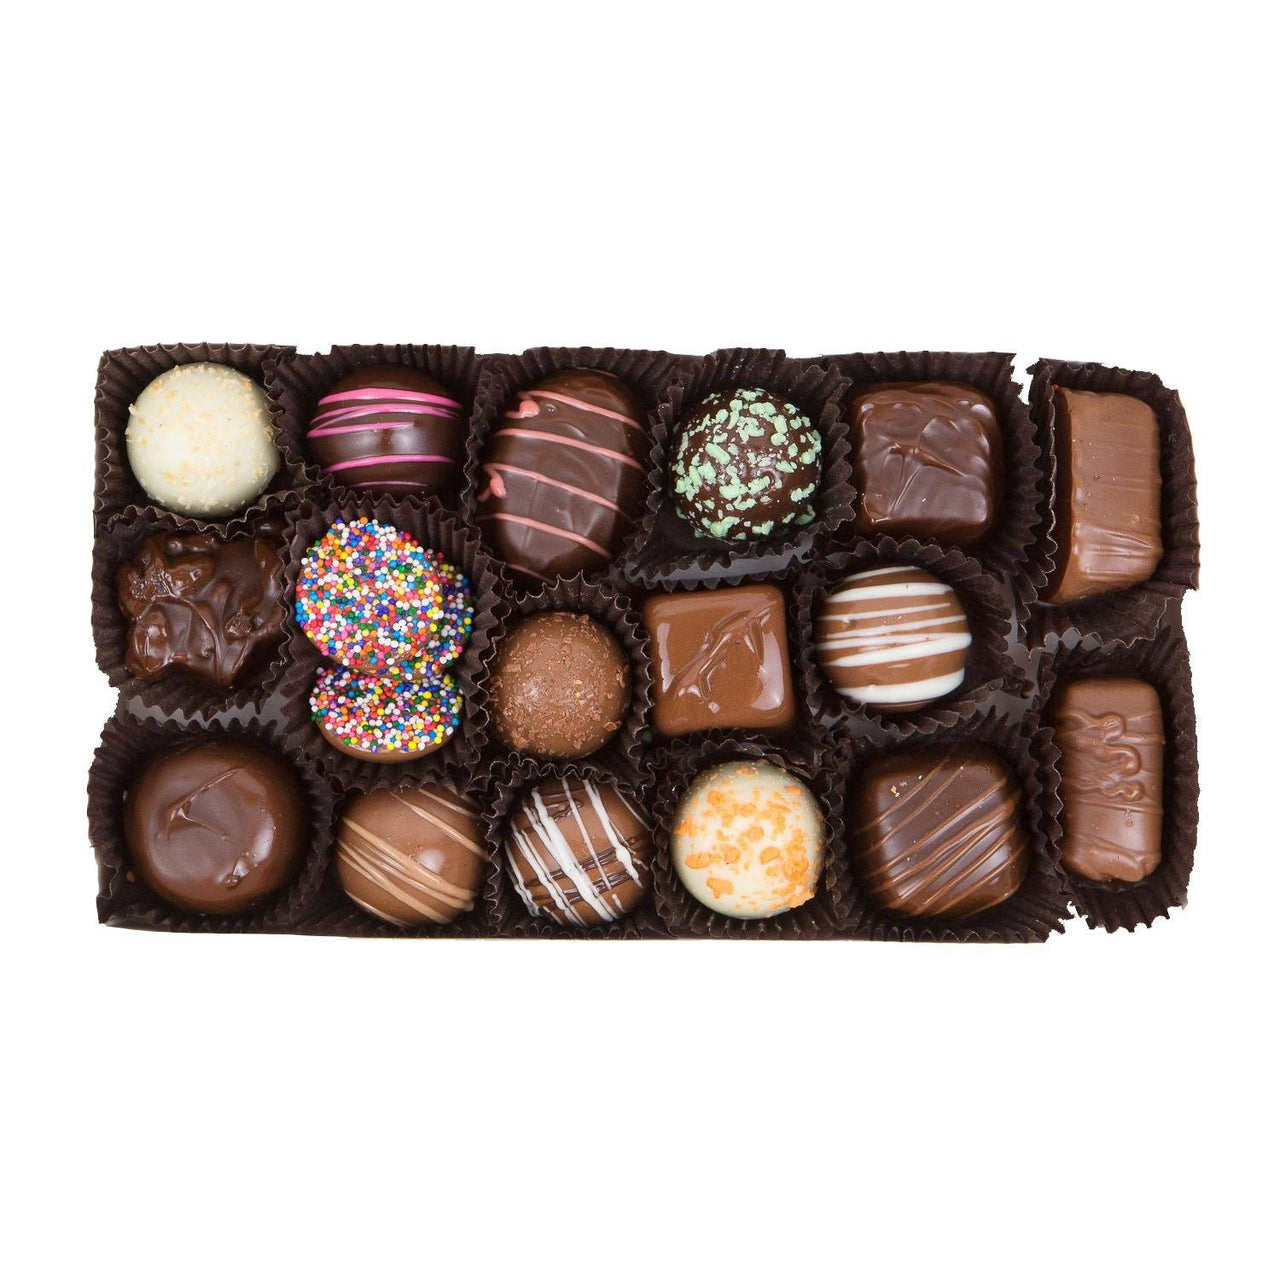 Gifts for Dad - Assorted Chocolate Gift Box - Jackie's Chocolate (1487123447843)